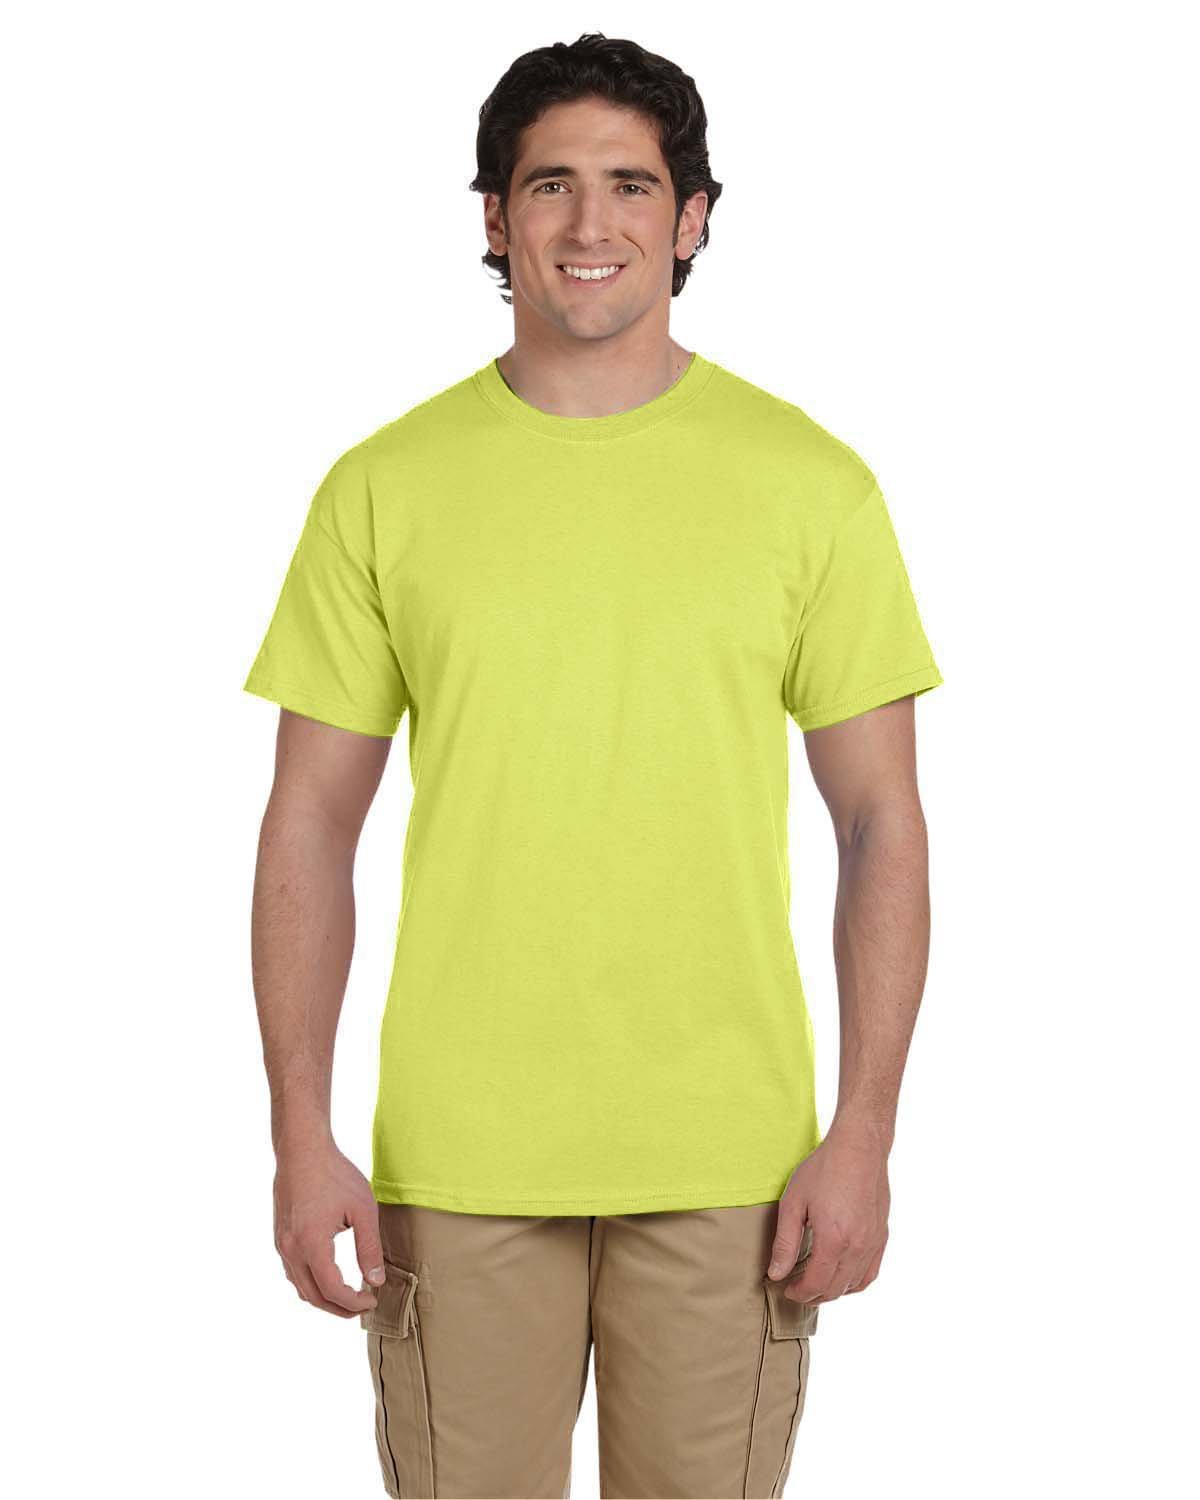 Fruit of the Loom Adult HD Cotton™ T-Shirt NEON YELLOW